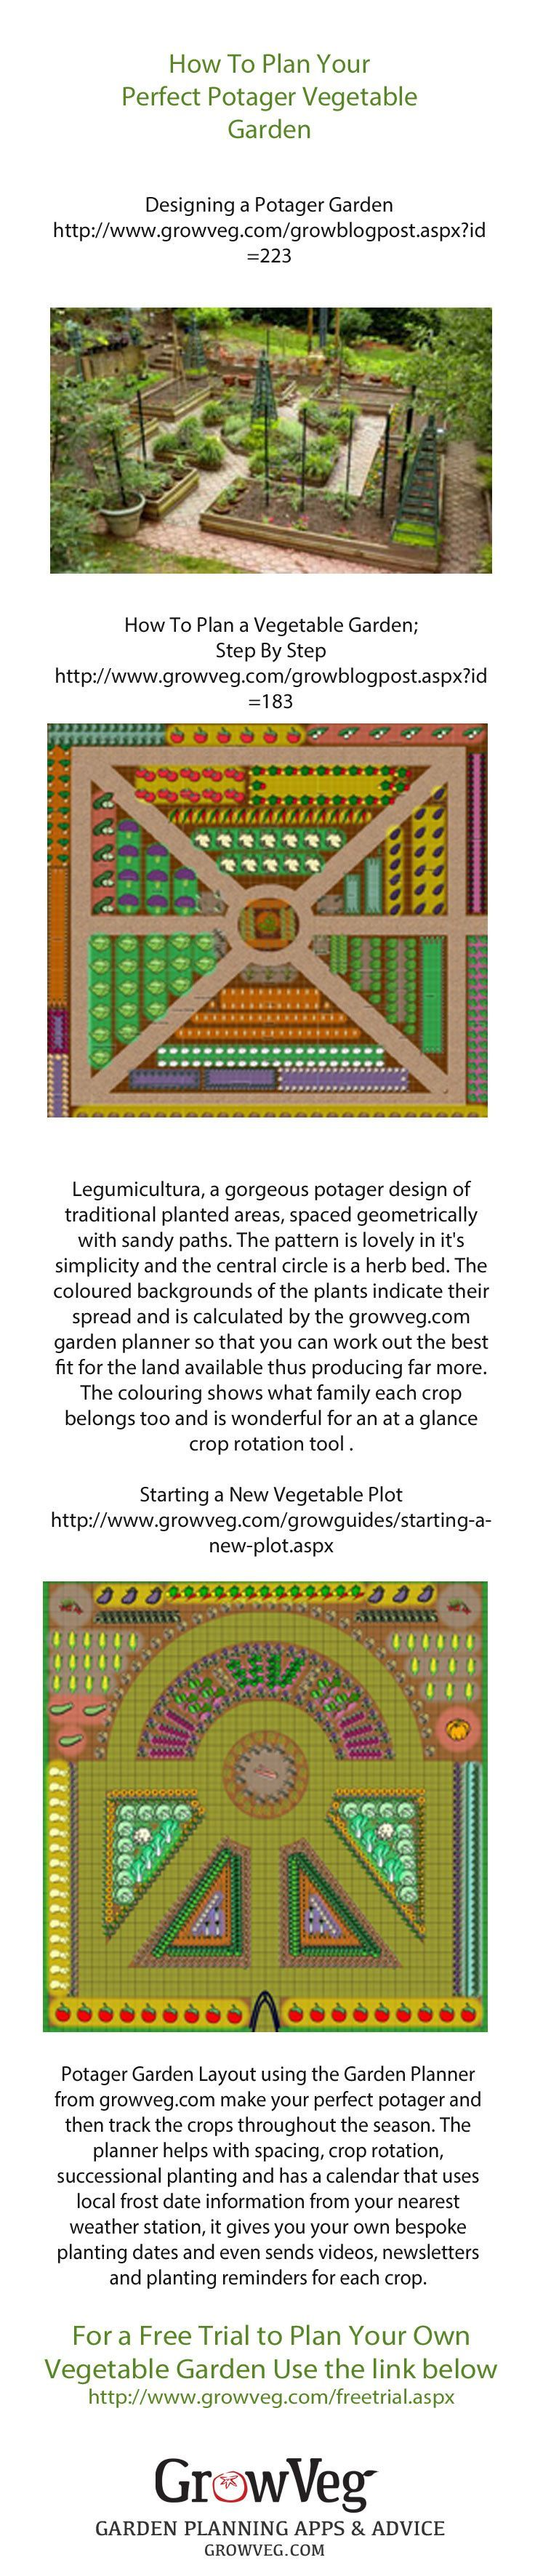 How to design a new potager vegetable garden from scratch for the coming planting season.